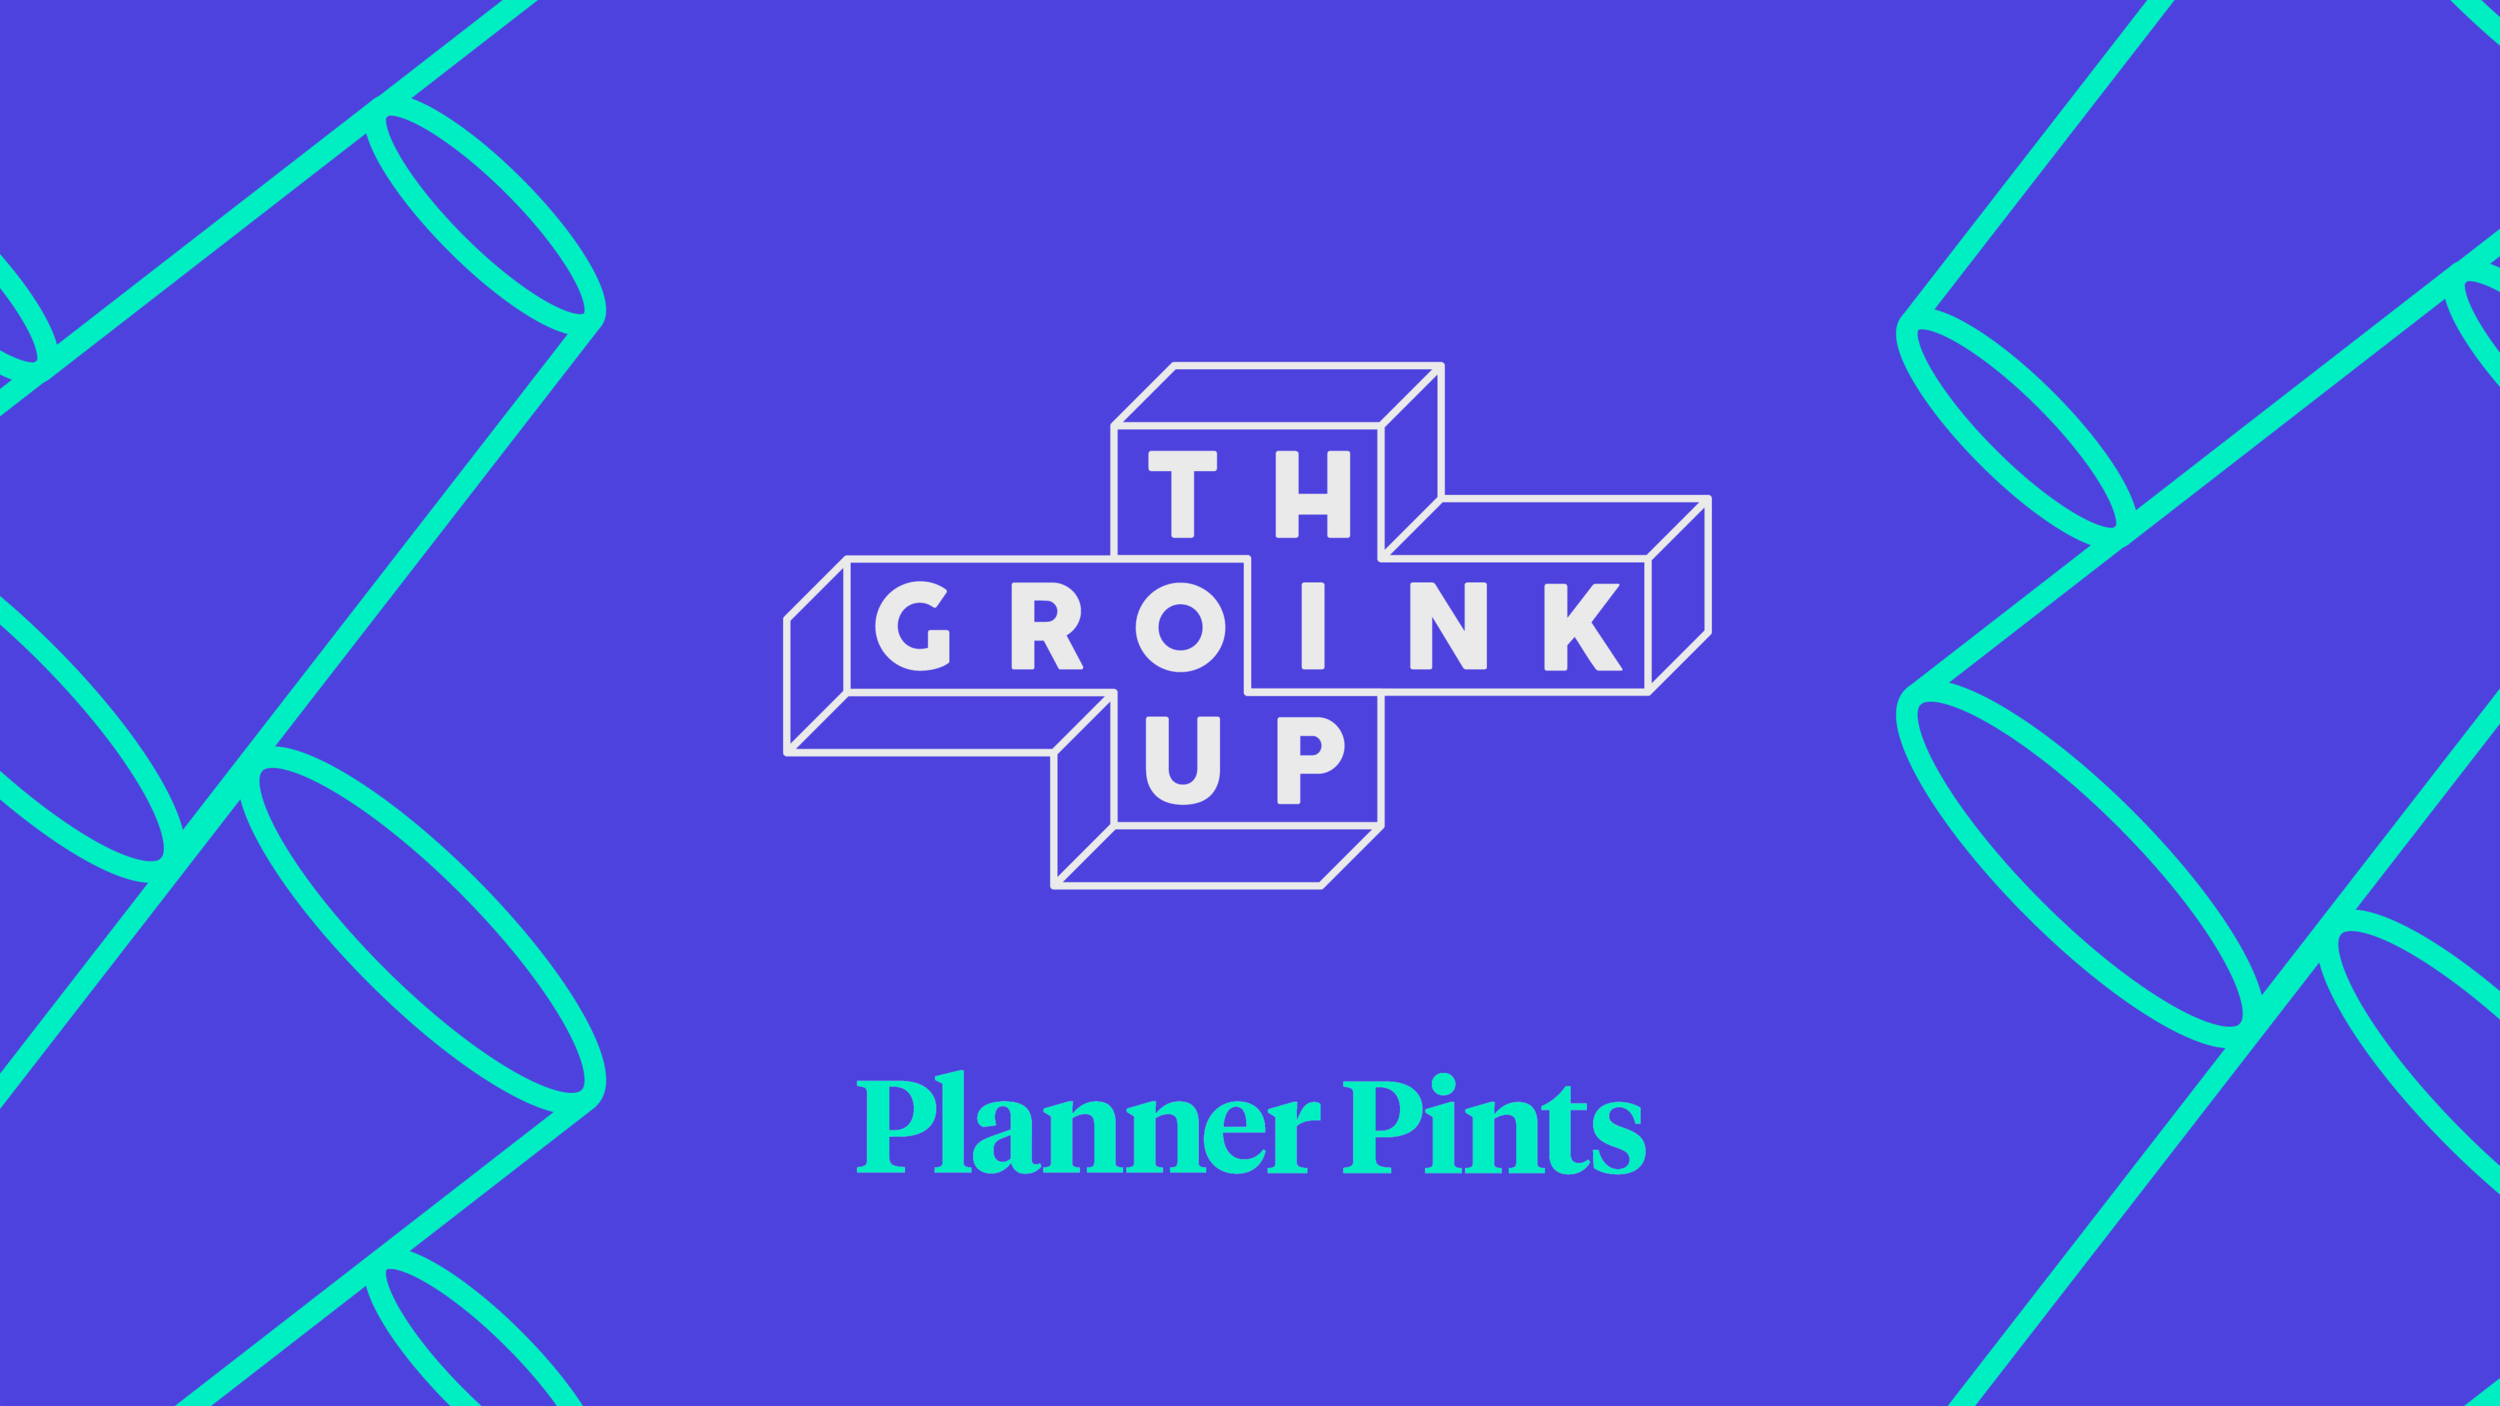 Our most casual event. We meet up at a pub on the first Thursday of every month, normally around Shoreditch or central London. Everyone's welcome and it's an opportunity to meet other strategists with a drink in hand. Super chill.